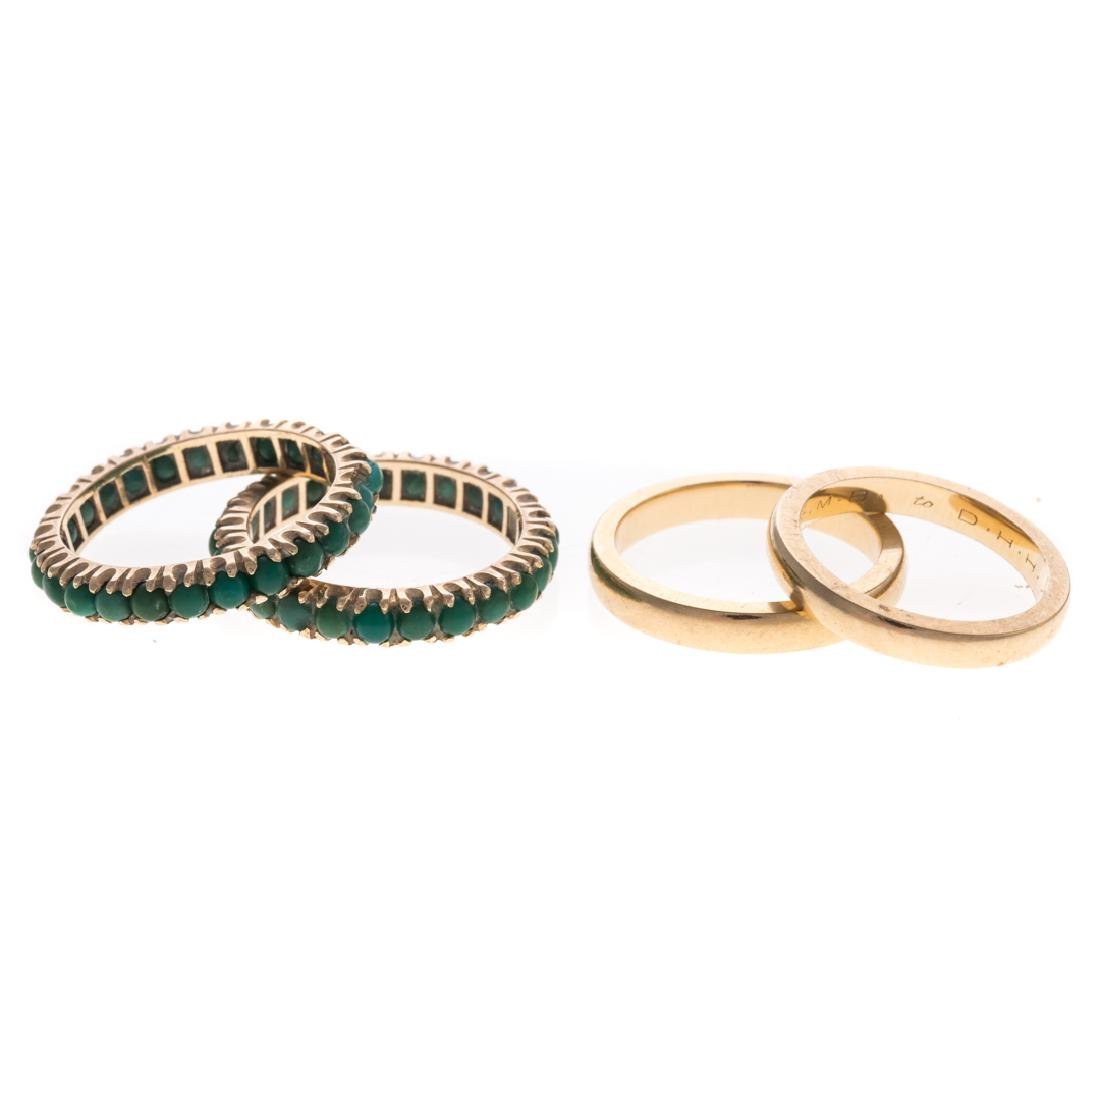 A Pair of 14K Turquoise Guards Rings & Gold Bands